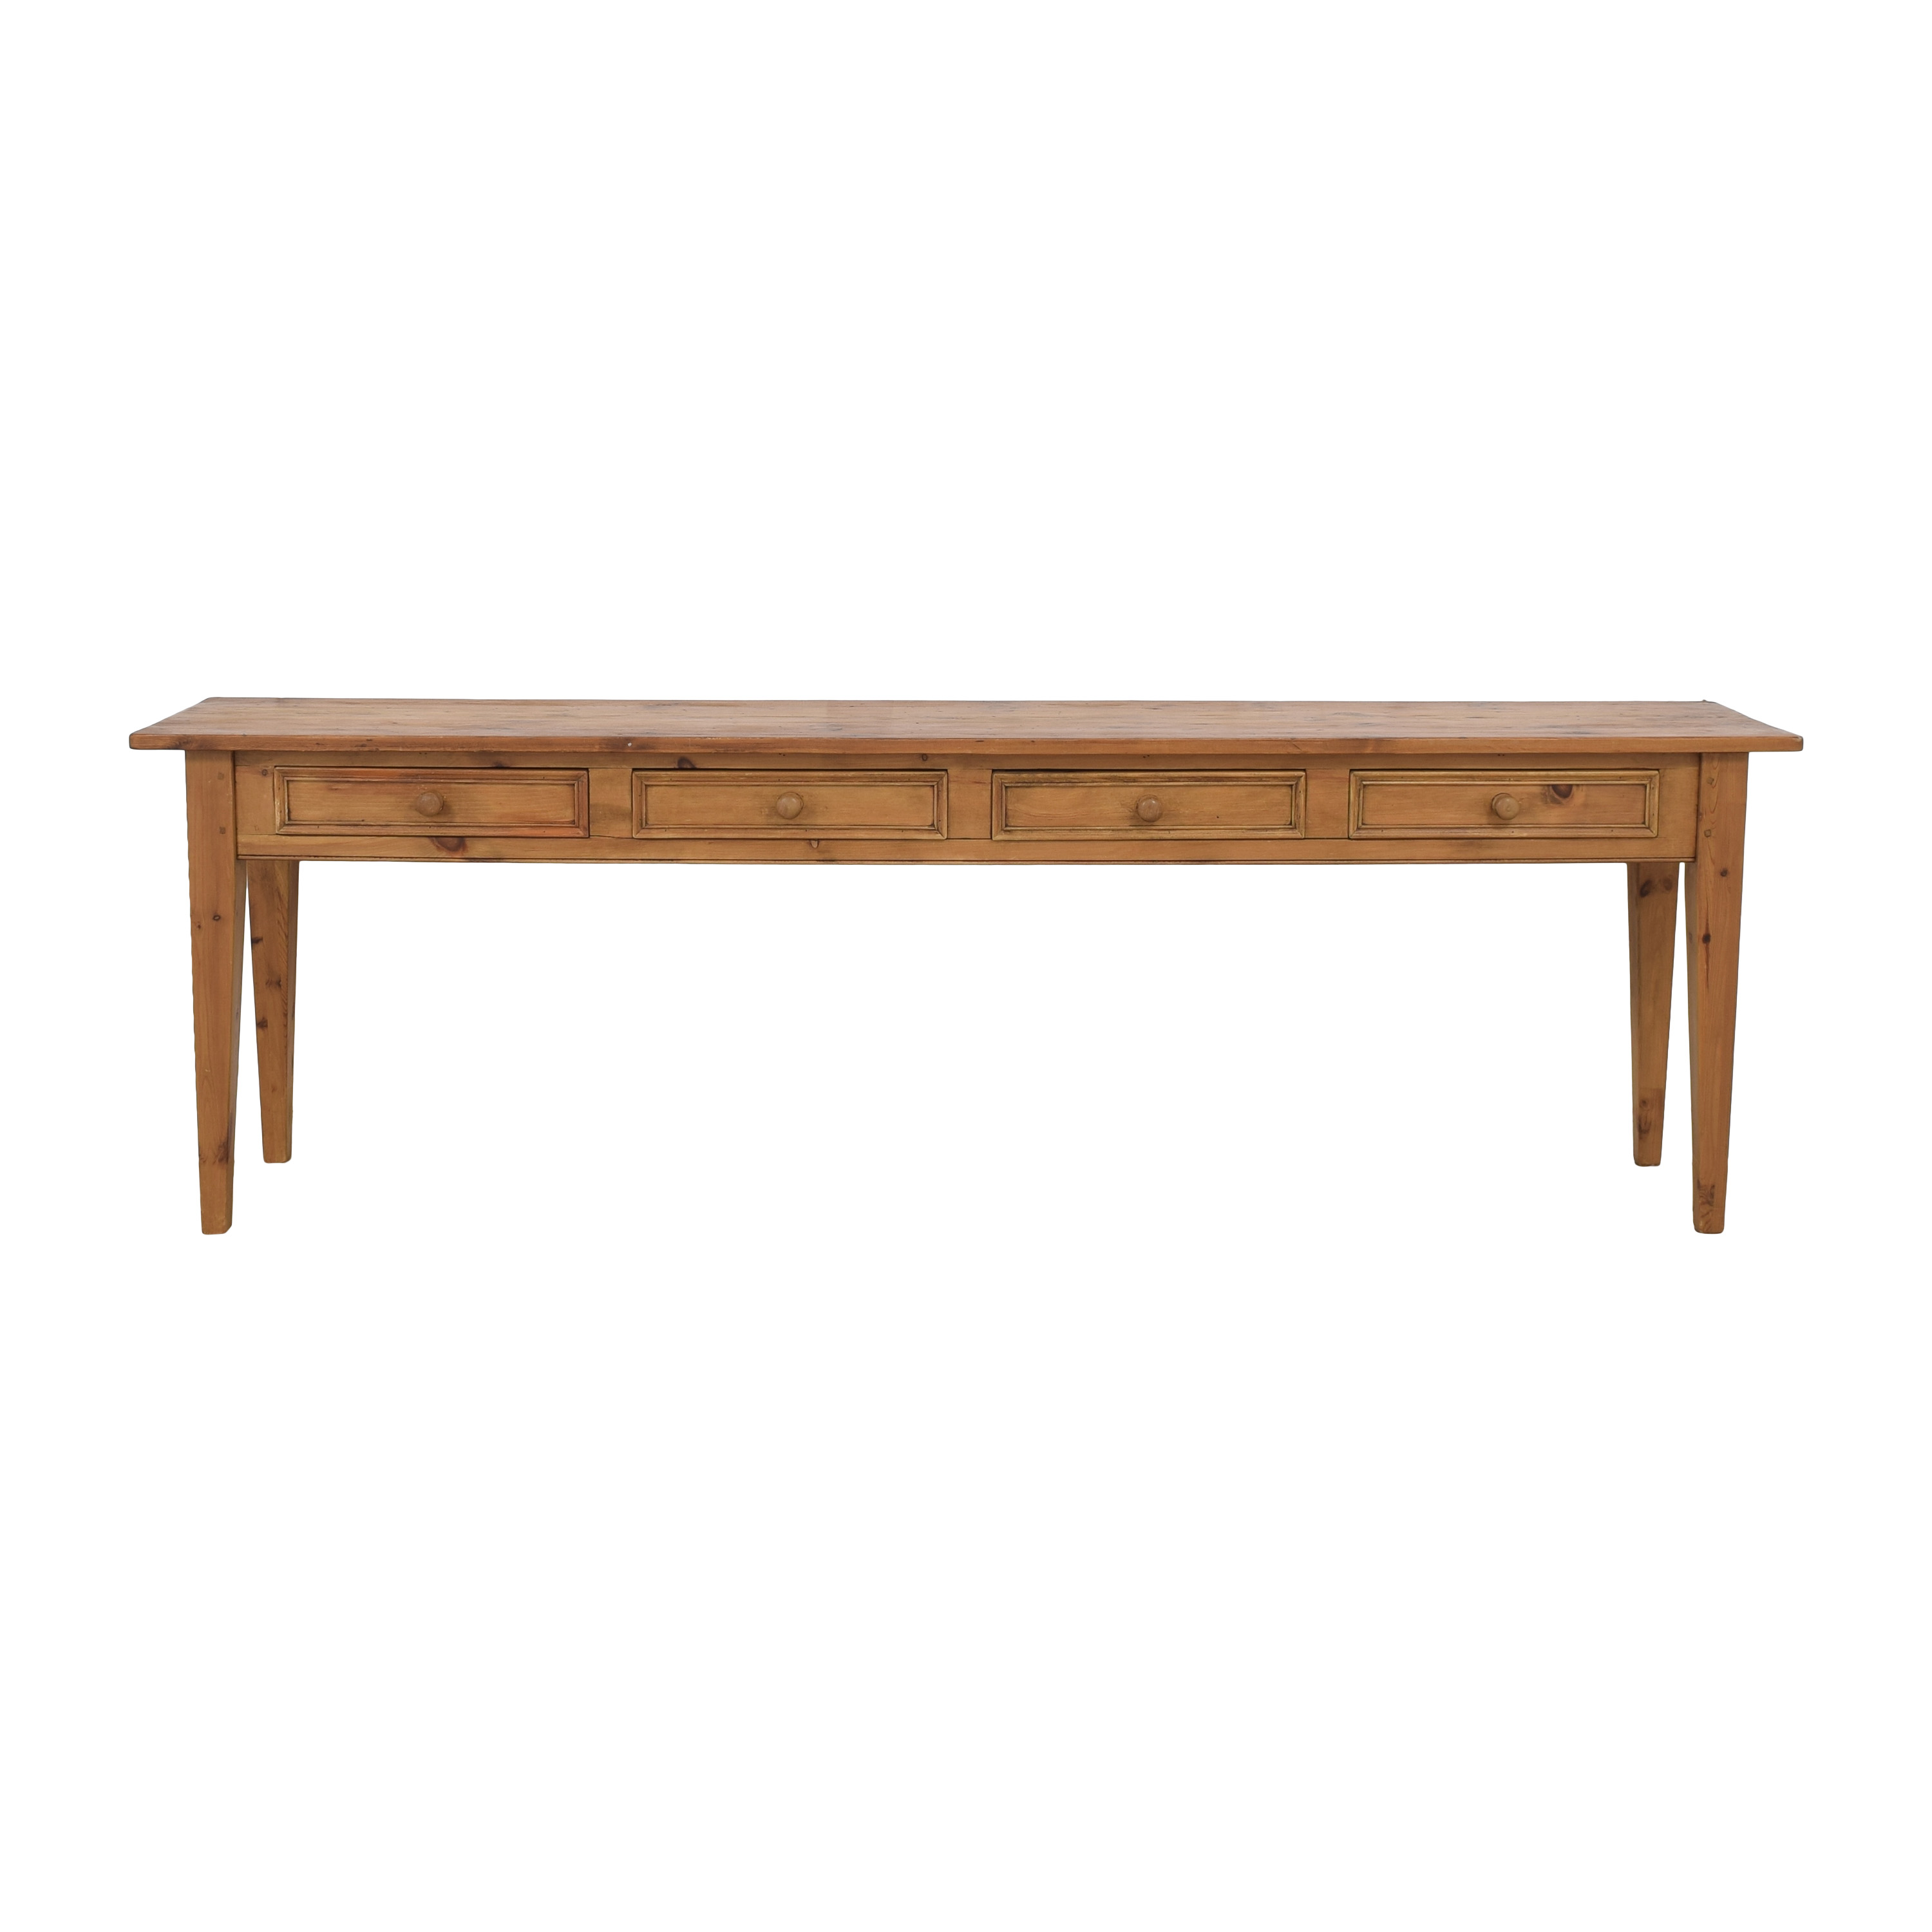 ABC Carpet & Home ABC Carpet & Home Sofa Table discount